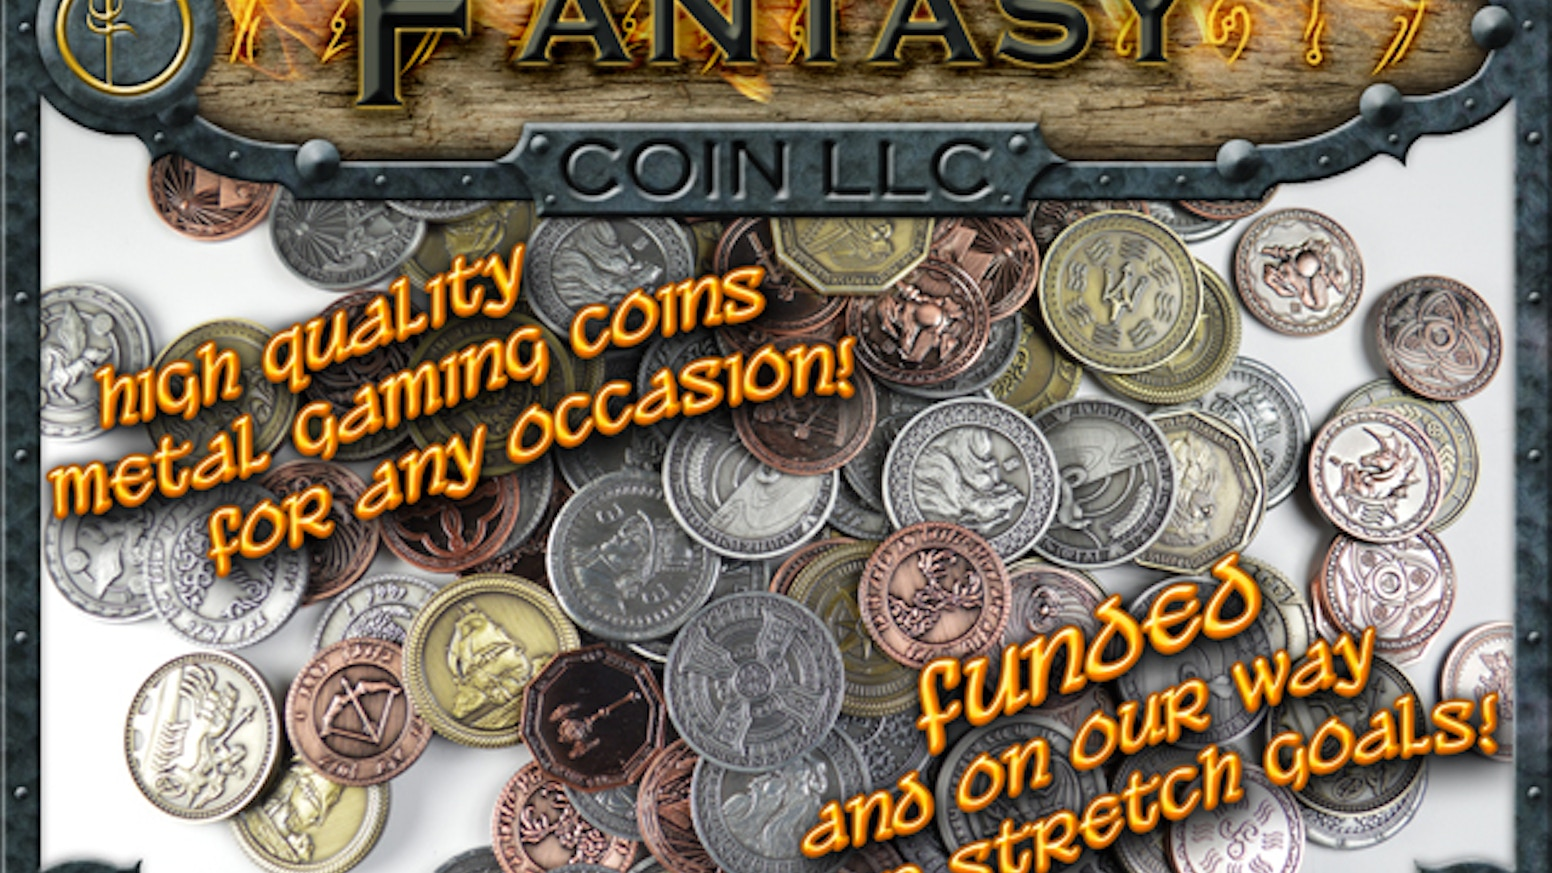 High quality metal coins for gaming or any occasion!  15 designs or more to choose from.  Over 1 1/2 years in the making.